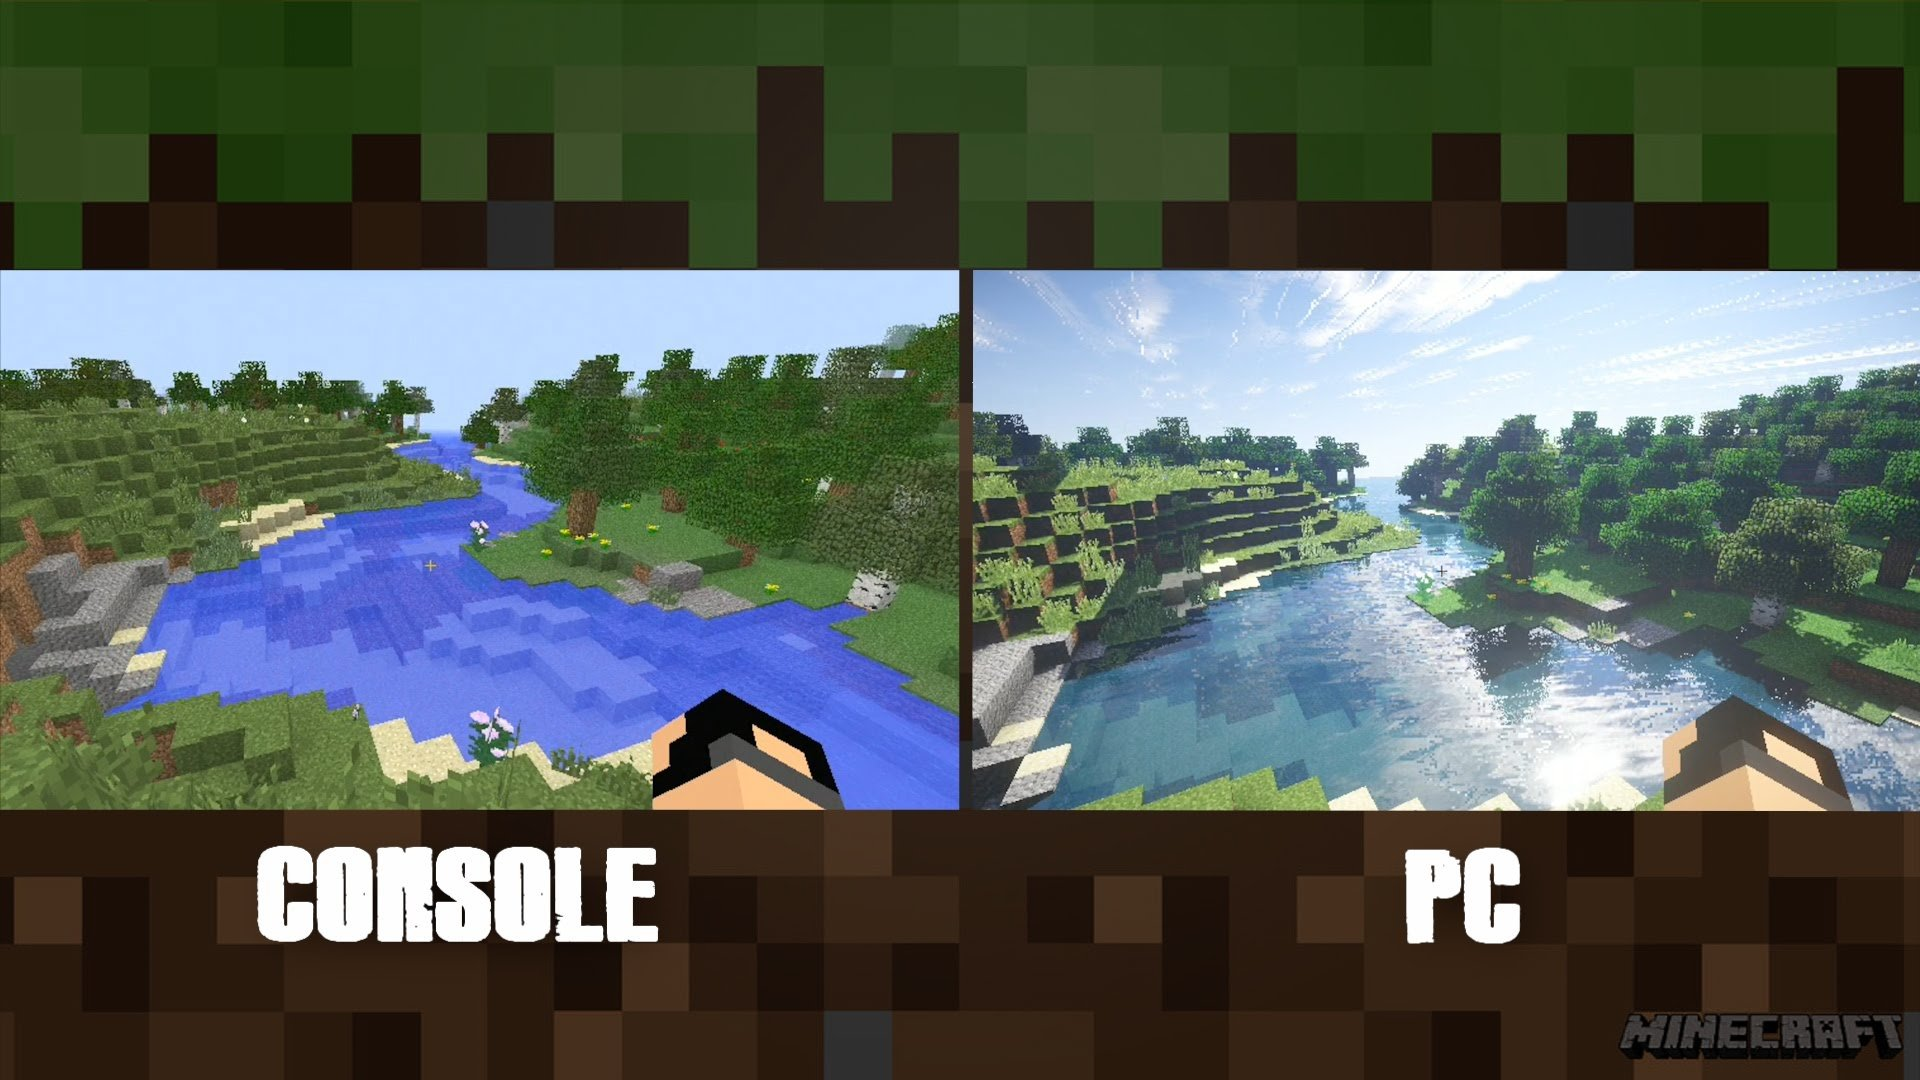 Shaders on xbox one version of minecraft - MCXONE